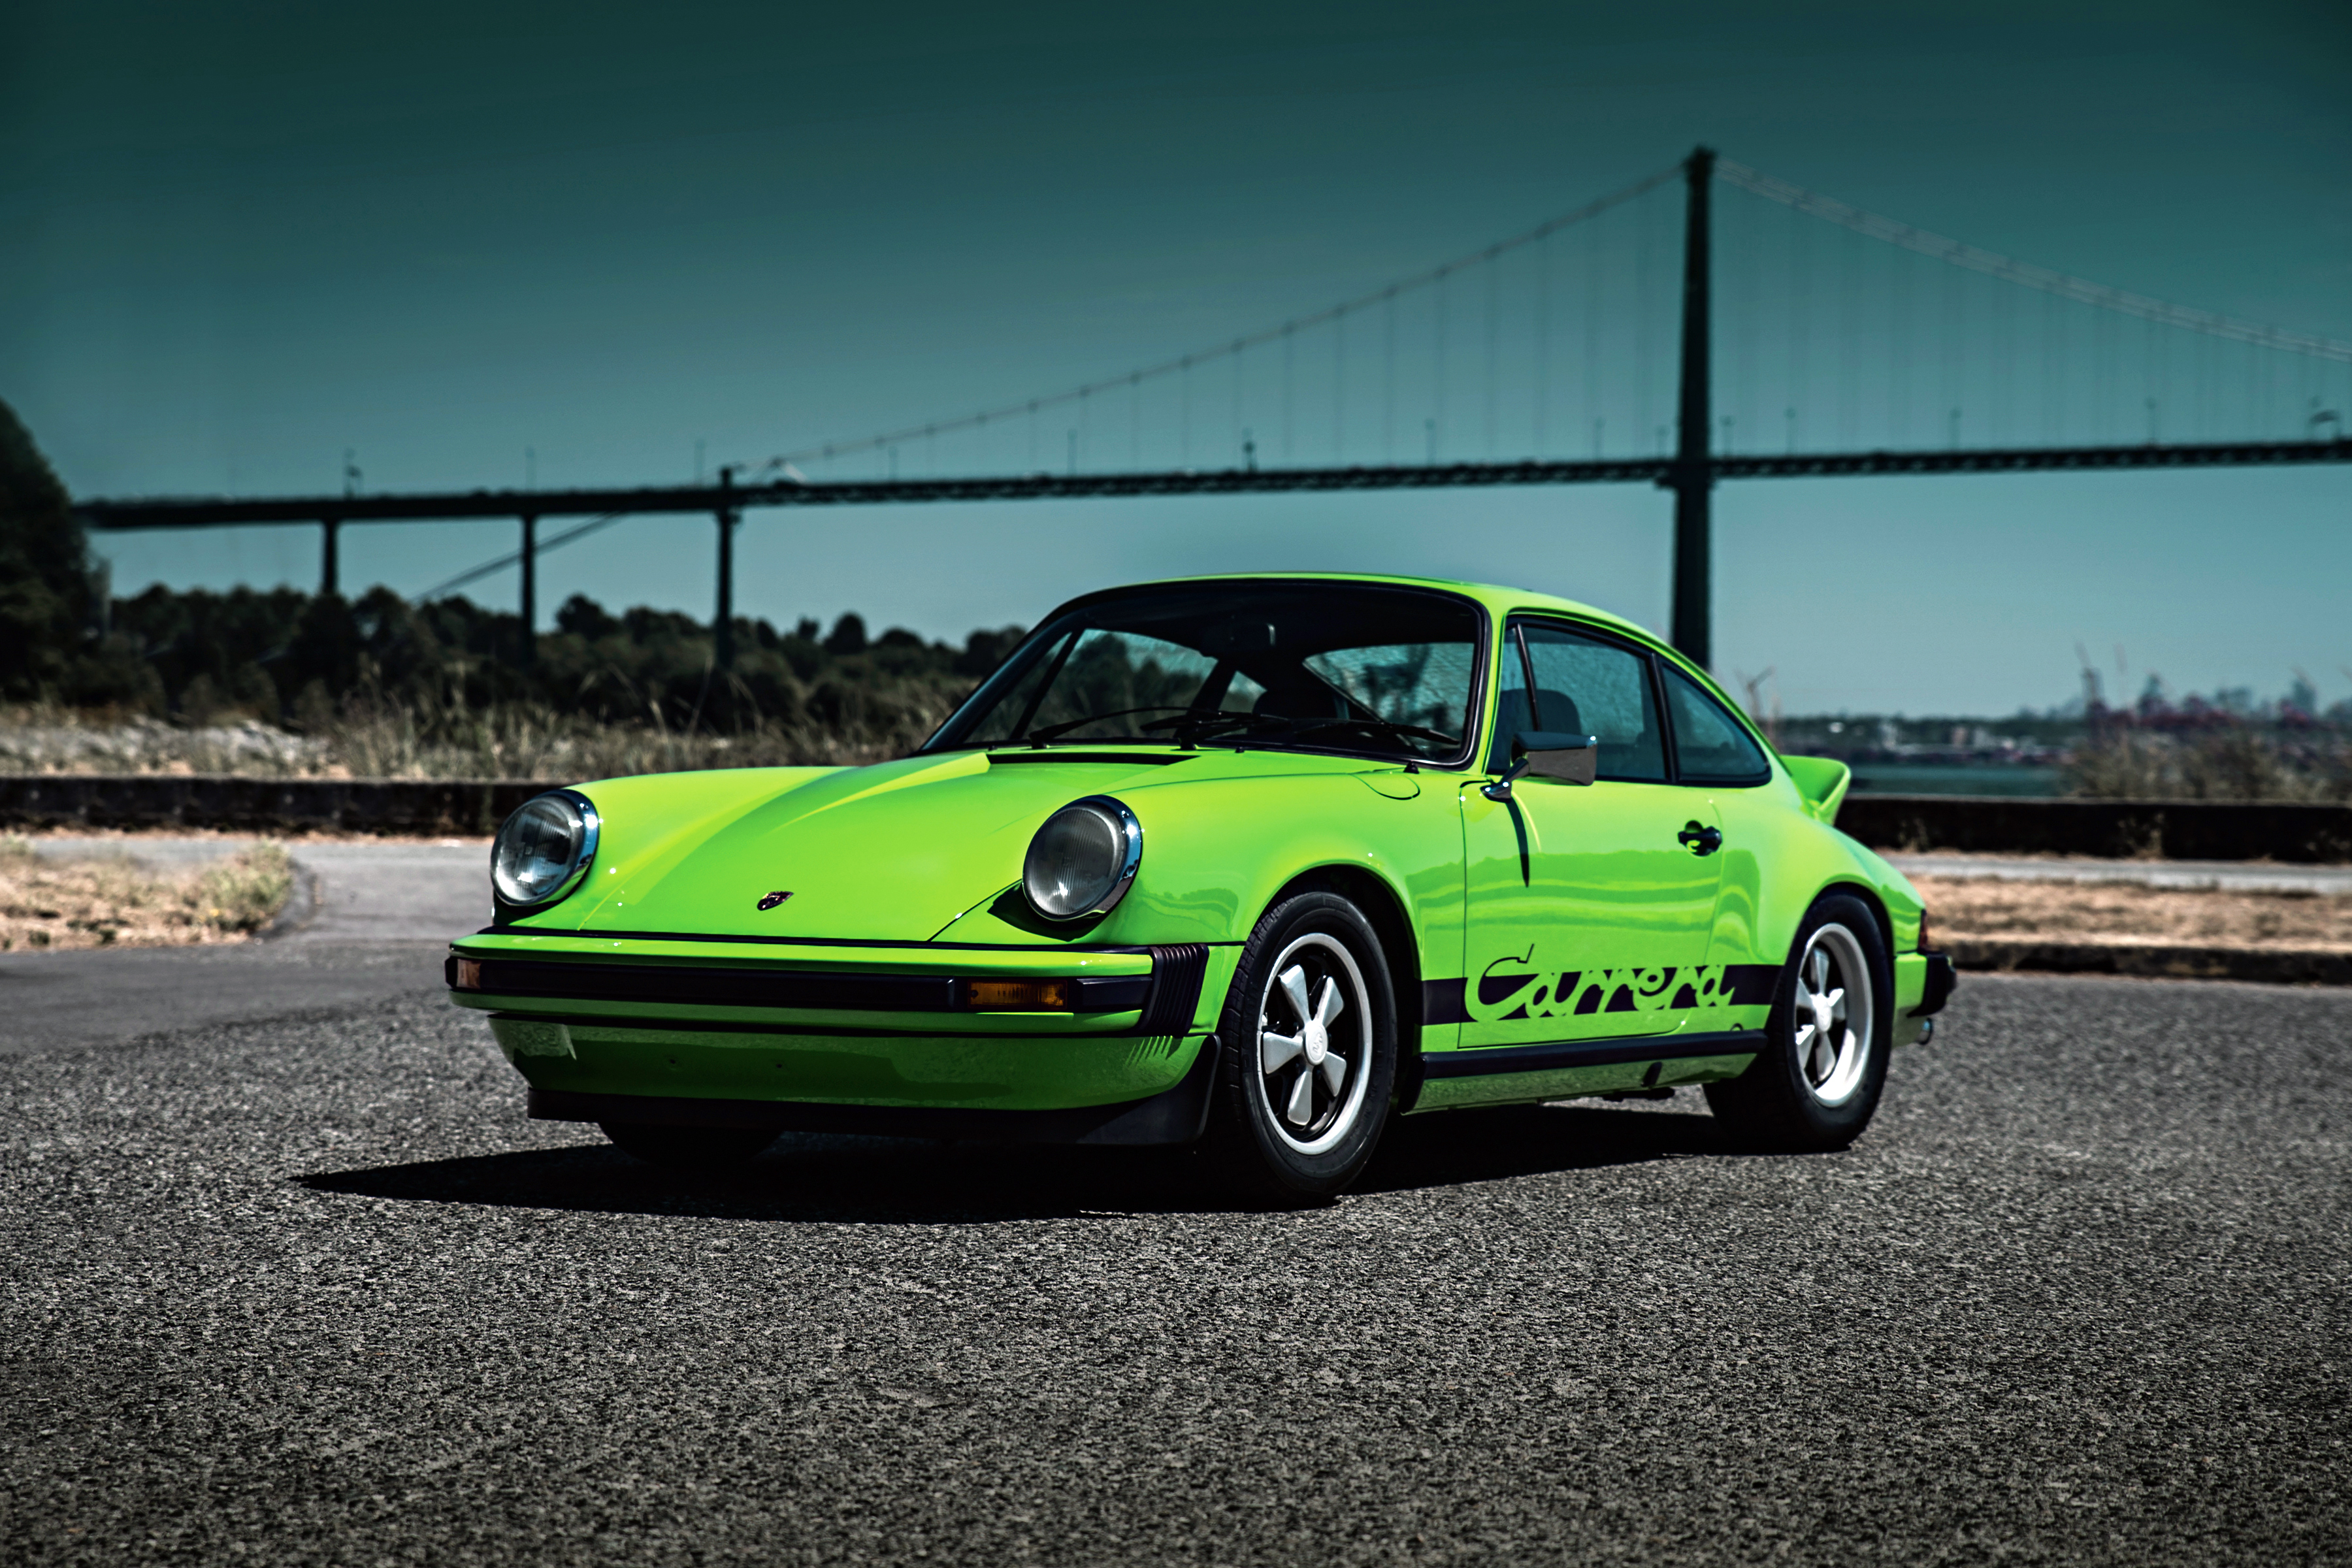 140537 Screensavers and Wallpapers Porsche for phone. Download Porsche, Cars, Side View, 911, Carrera, 1974 pictures for free